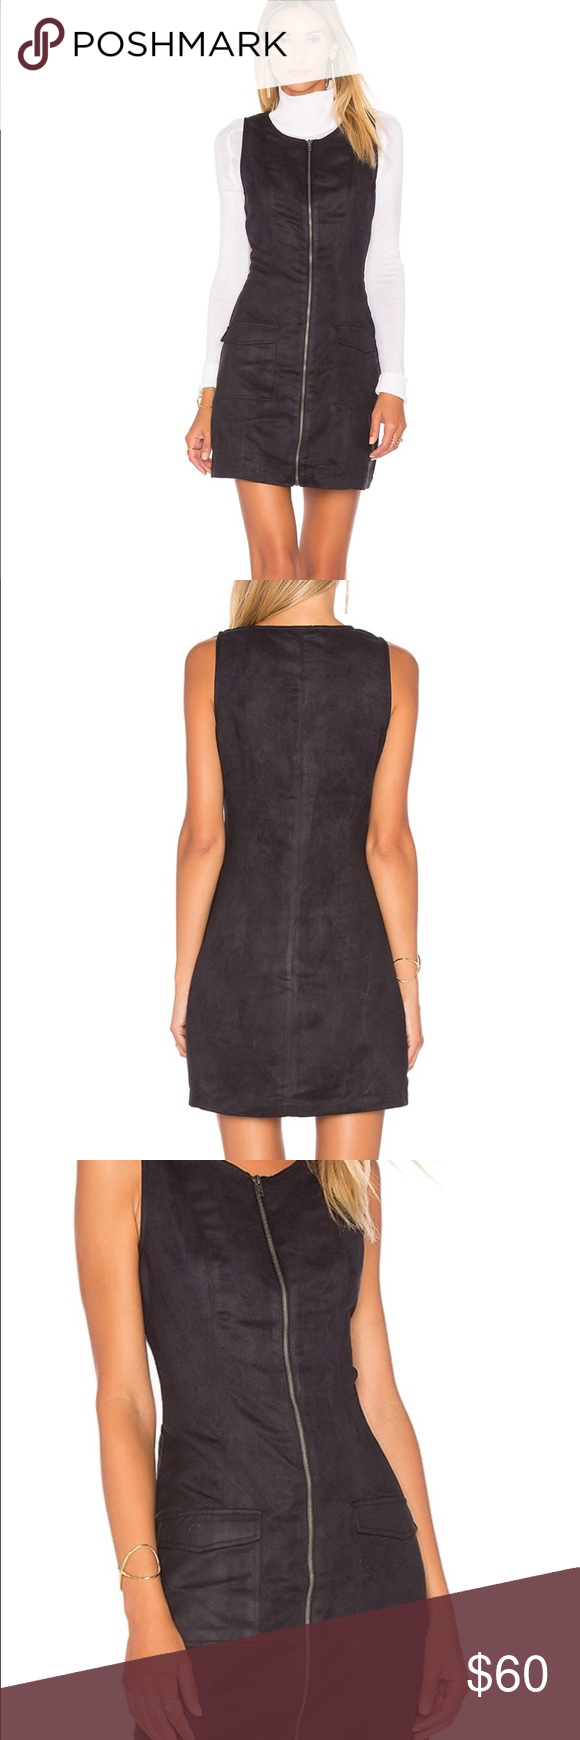 ec52c98224 Jack by BB Dakota Faux Suede Jumper Brand new with tags. Faux suede zip  front dress with double front pockets. Fits true to size. Great dress.